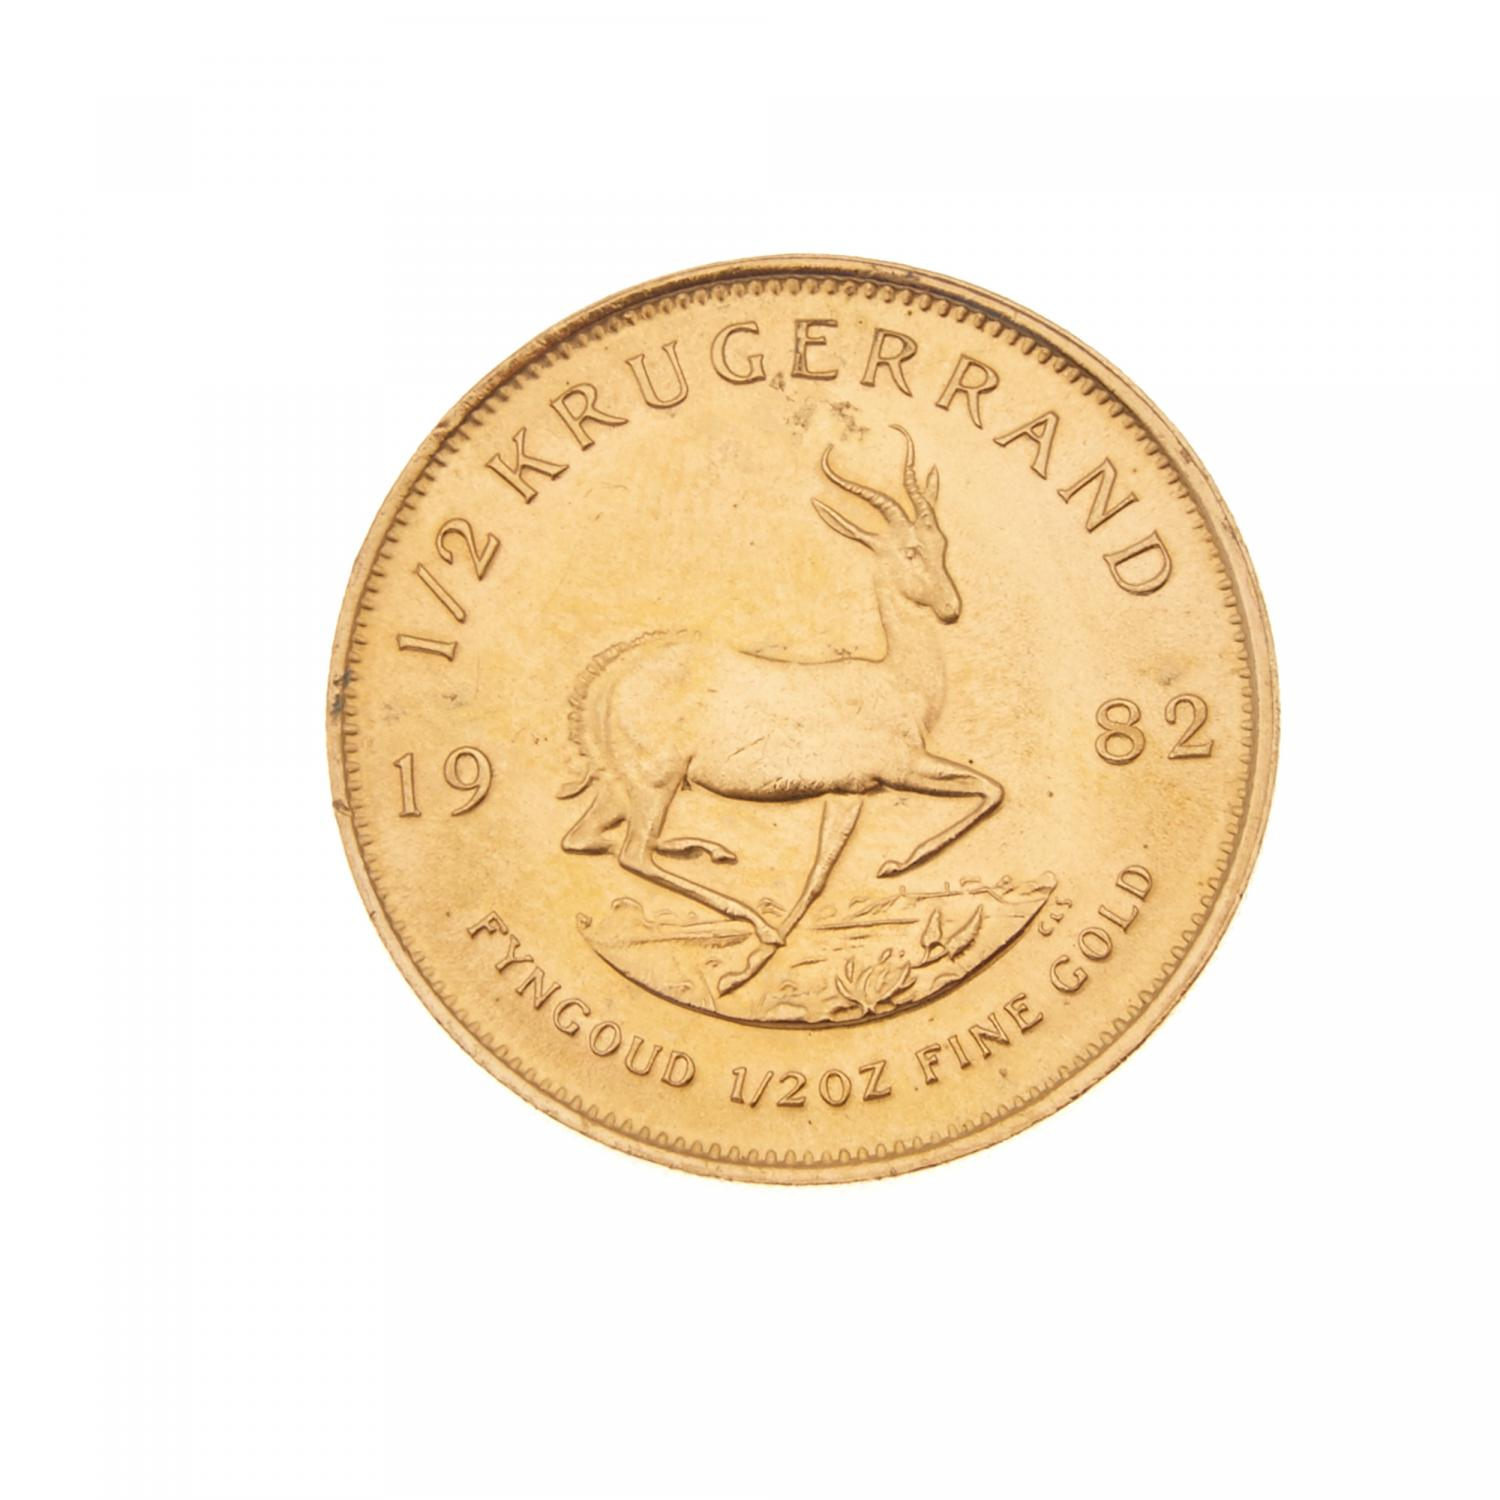 Lot 70 Of 240 A 1 2 Krugerrand 1982 Oz Fine Gold